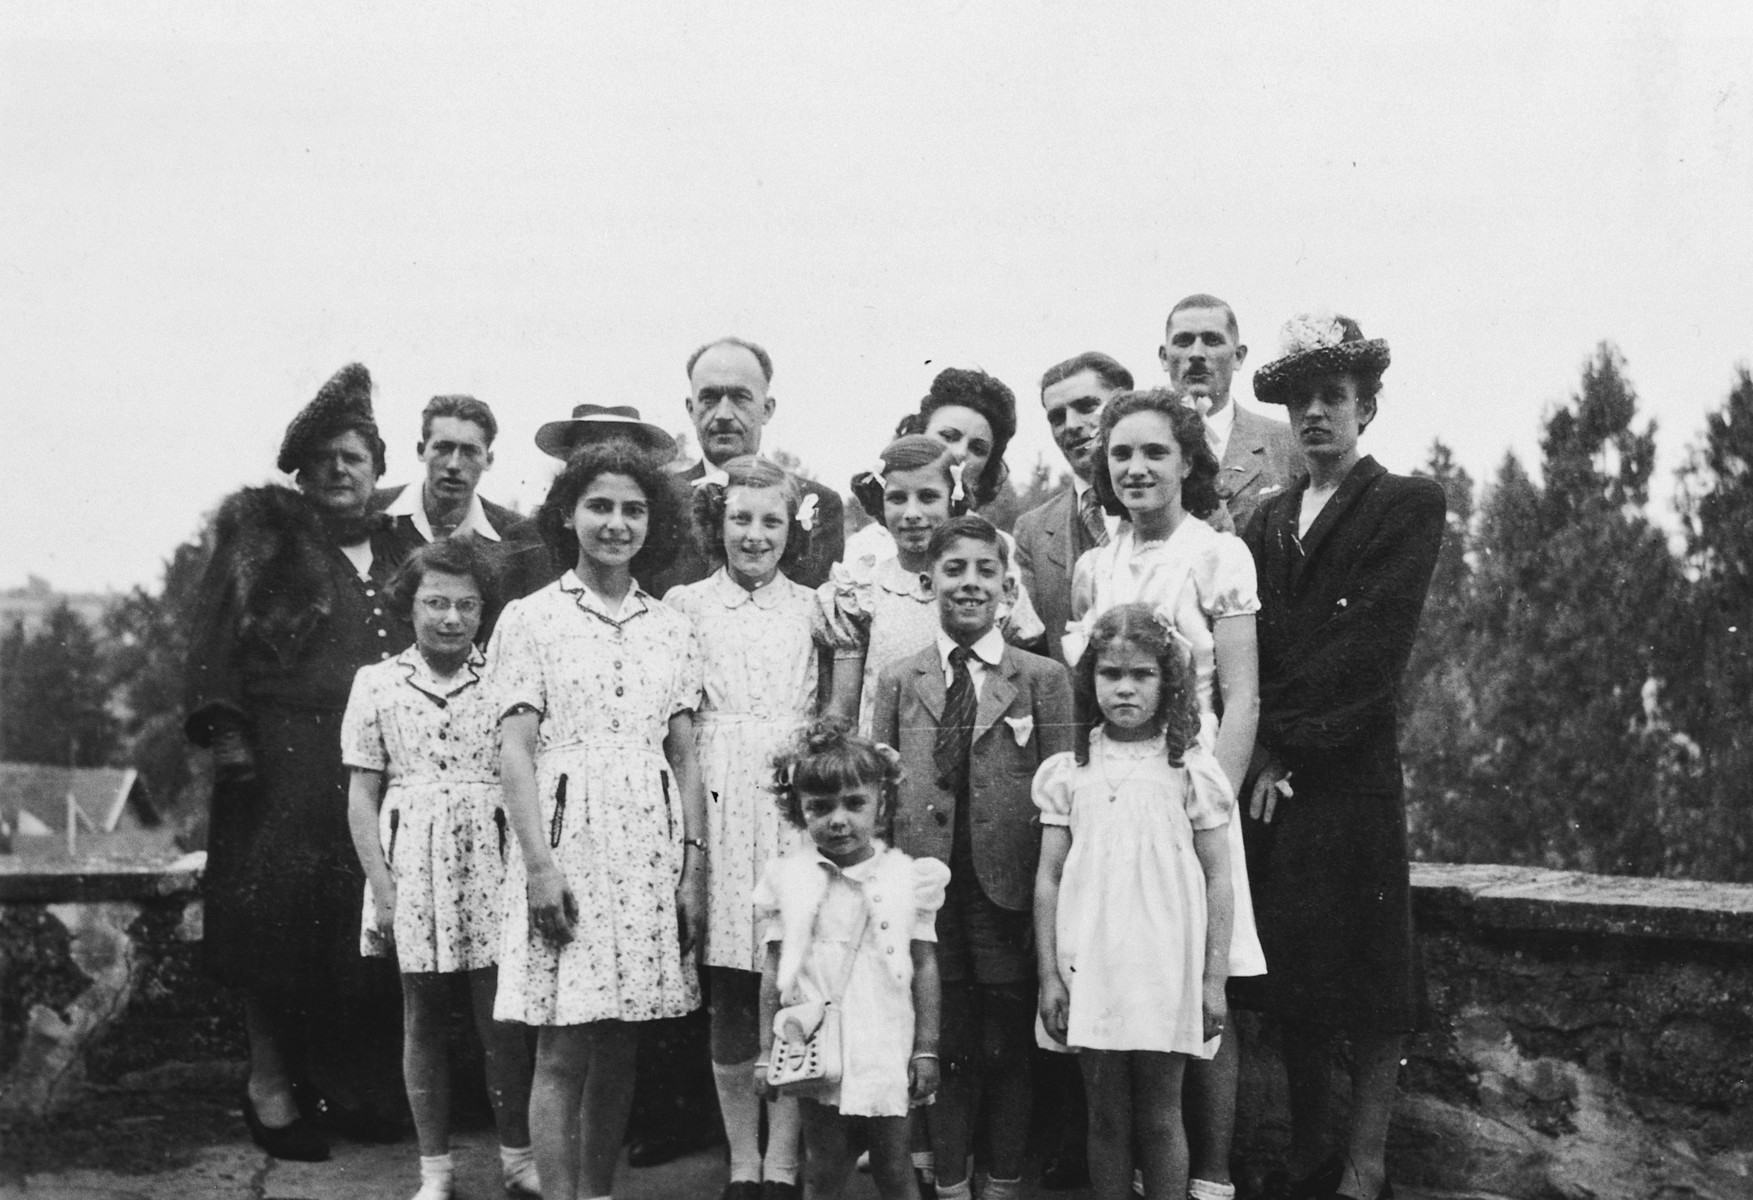 Portrait of two Jewish sisters together with the French family who hid them.  Pictured are Dina and Regine Gartenlaub (front left), Annette Cherrier (left with a hat) and Elly Cherrier (back row, second from right).